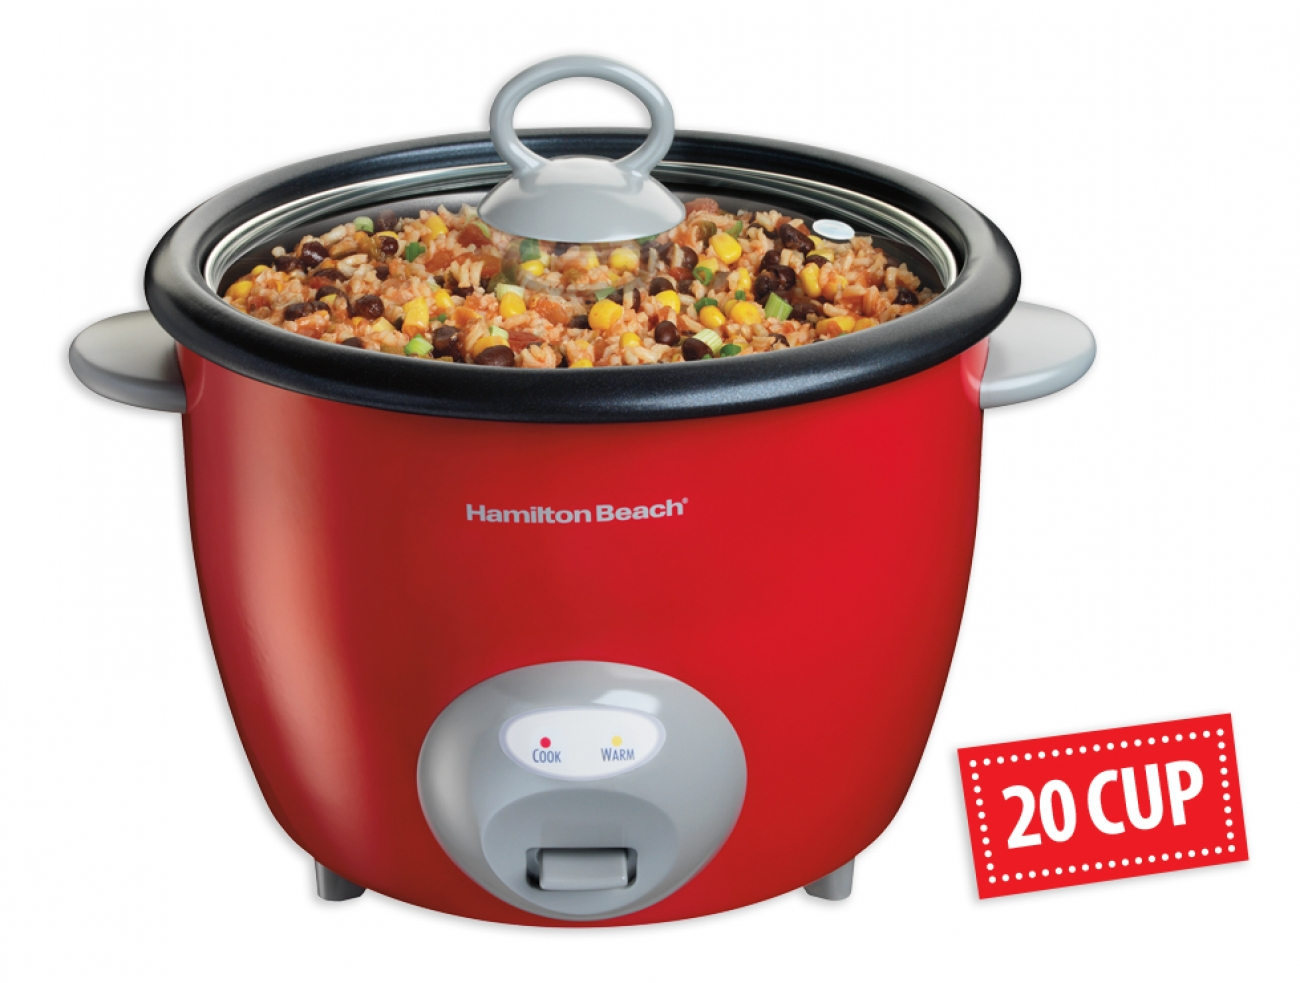 Hamilton Beach 20 Cup Digital Rice Cooker